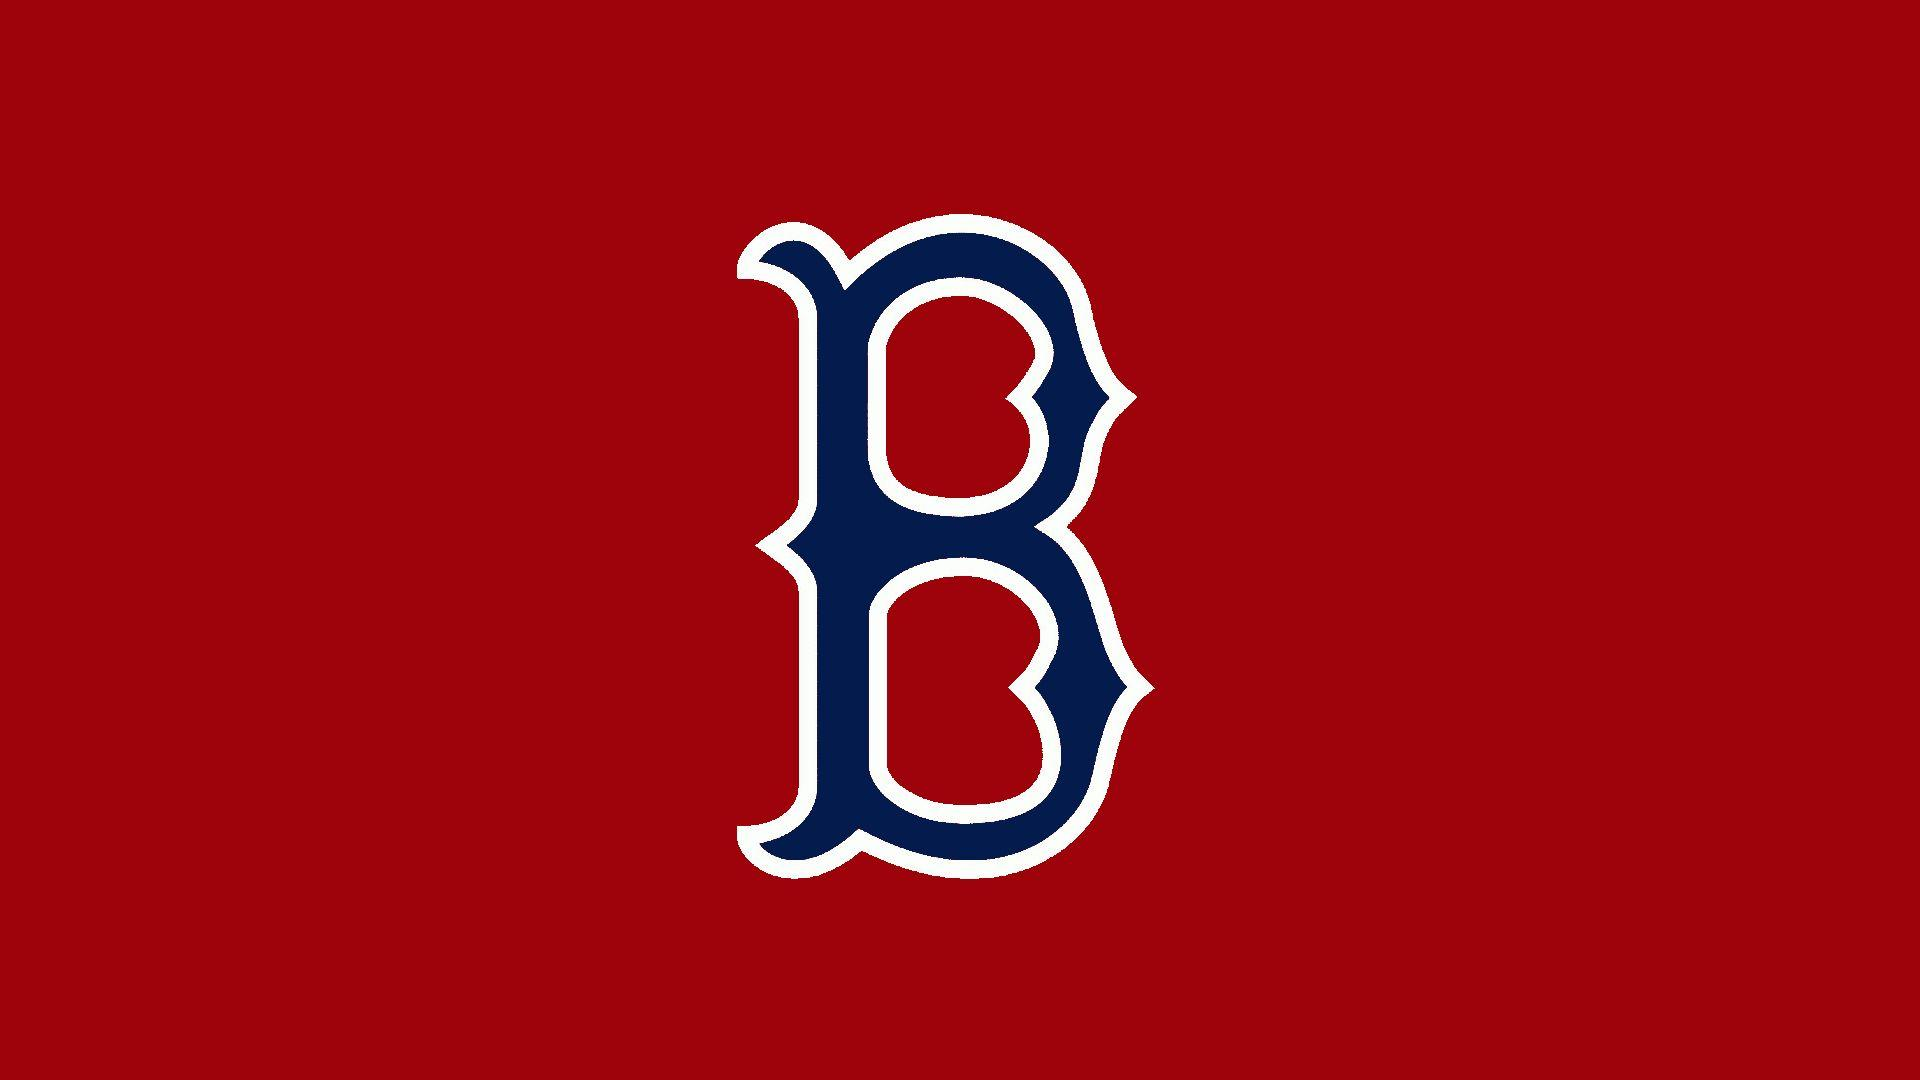 Boston Red Sox Logo Wallpapers 1920x1080